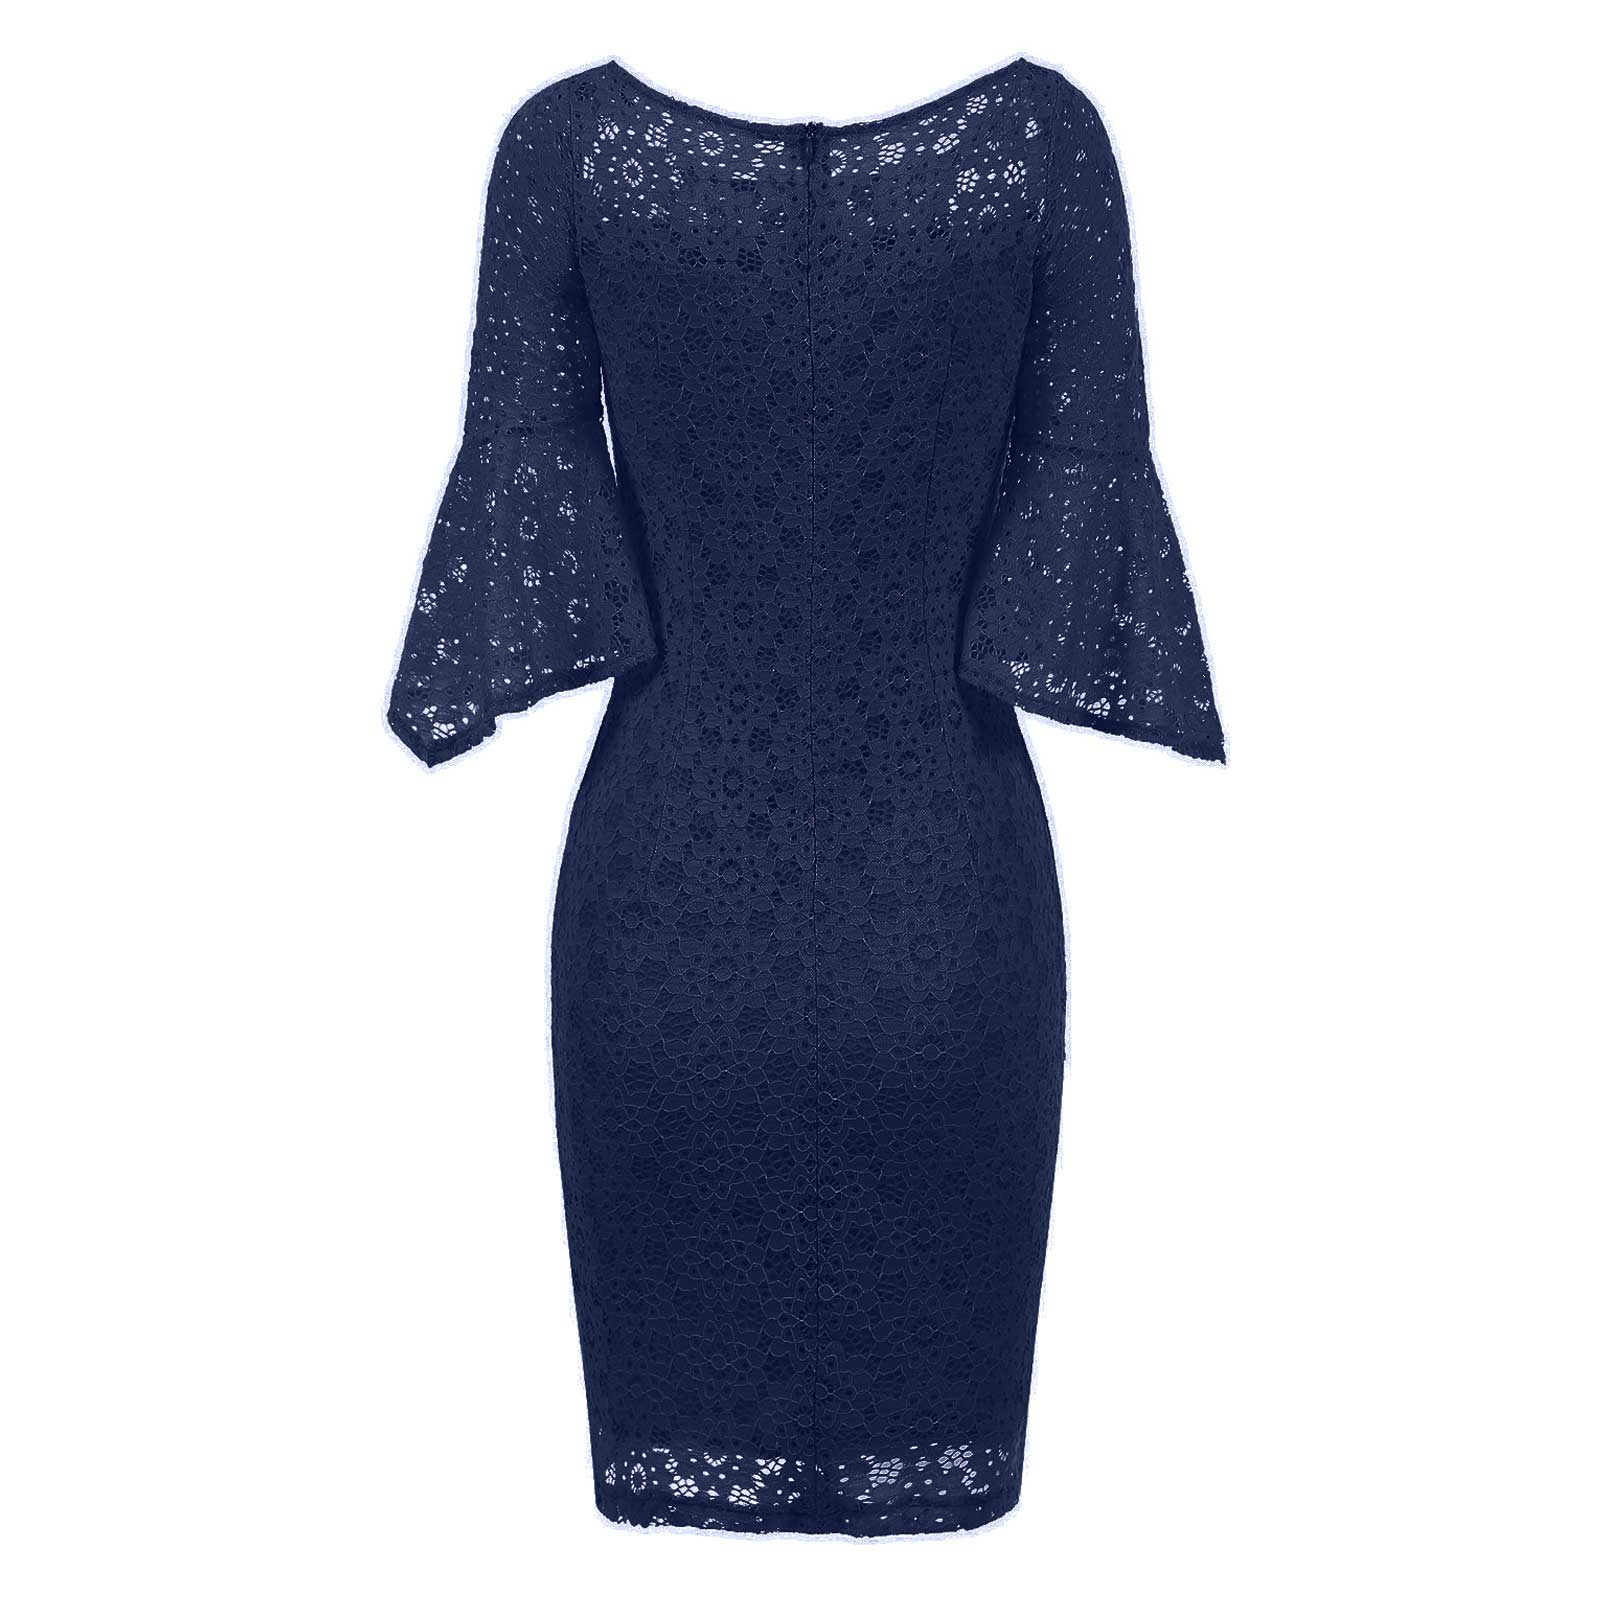 Sexy Women Bell Sleeve Lace Party Cocktail Bodycon Sheath